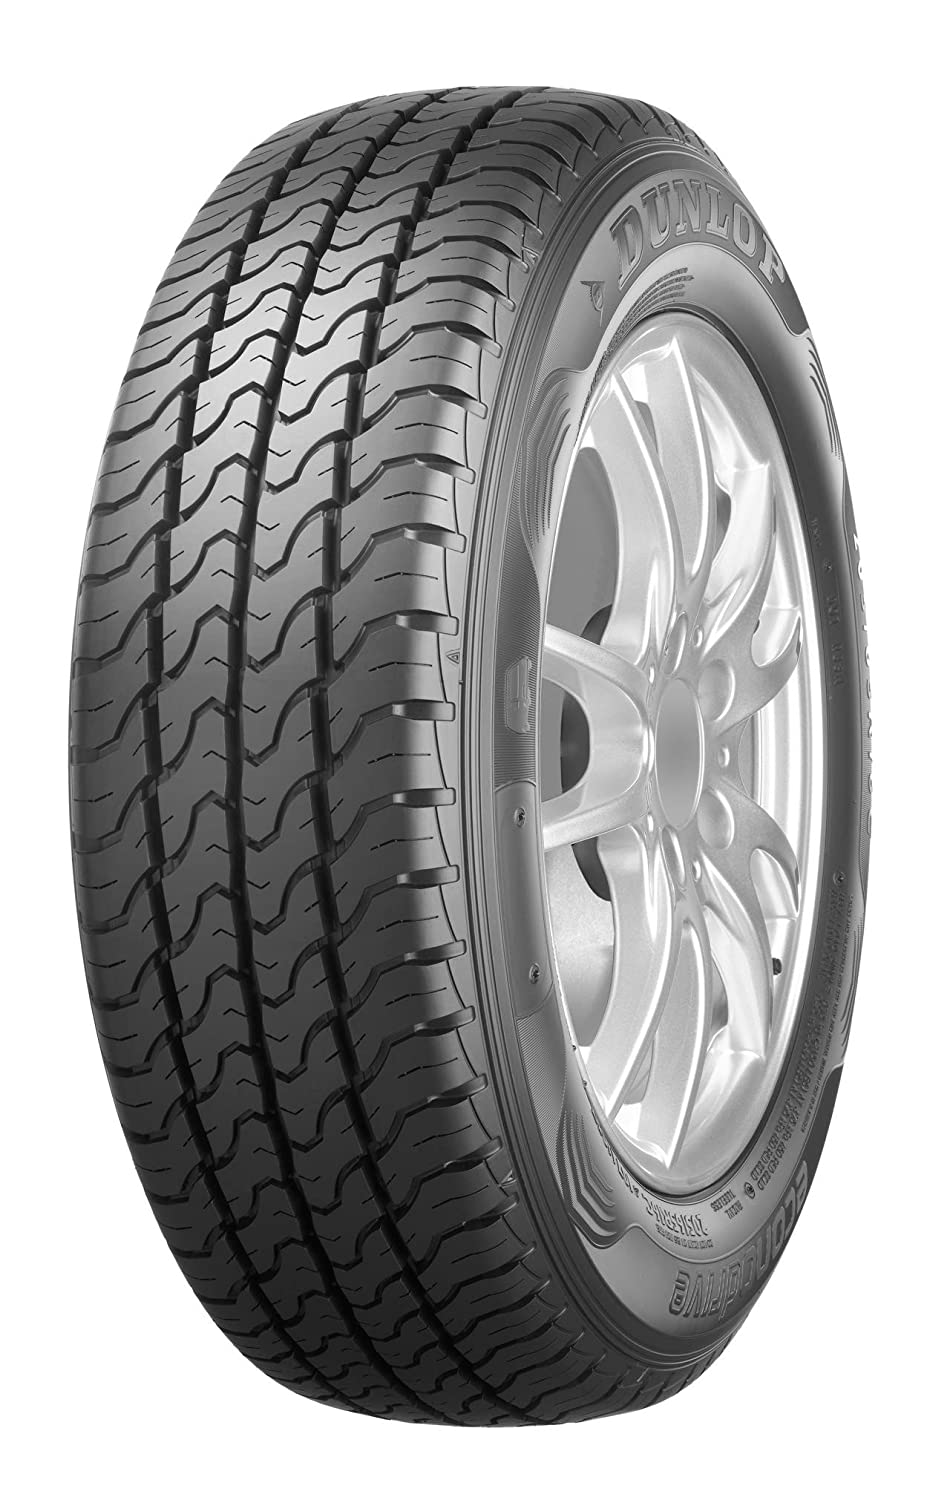 Dunlop Econodrive - 215/60/R17 109T - C/B/70 - Summer Tire (Light Truck) GOODYEAR DUNLOP TIRES OPERATIONS S.A.